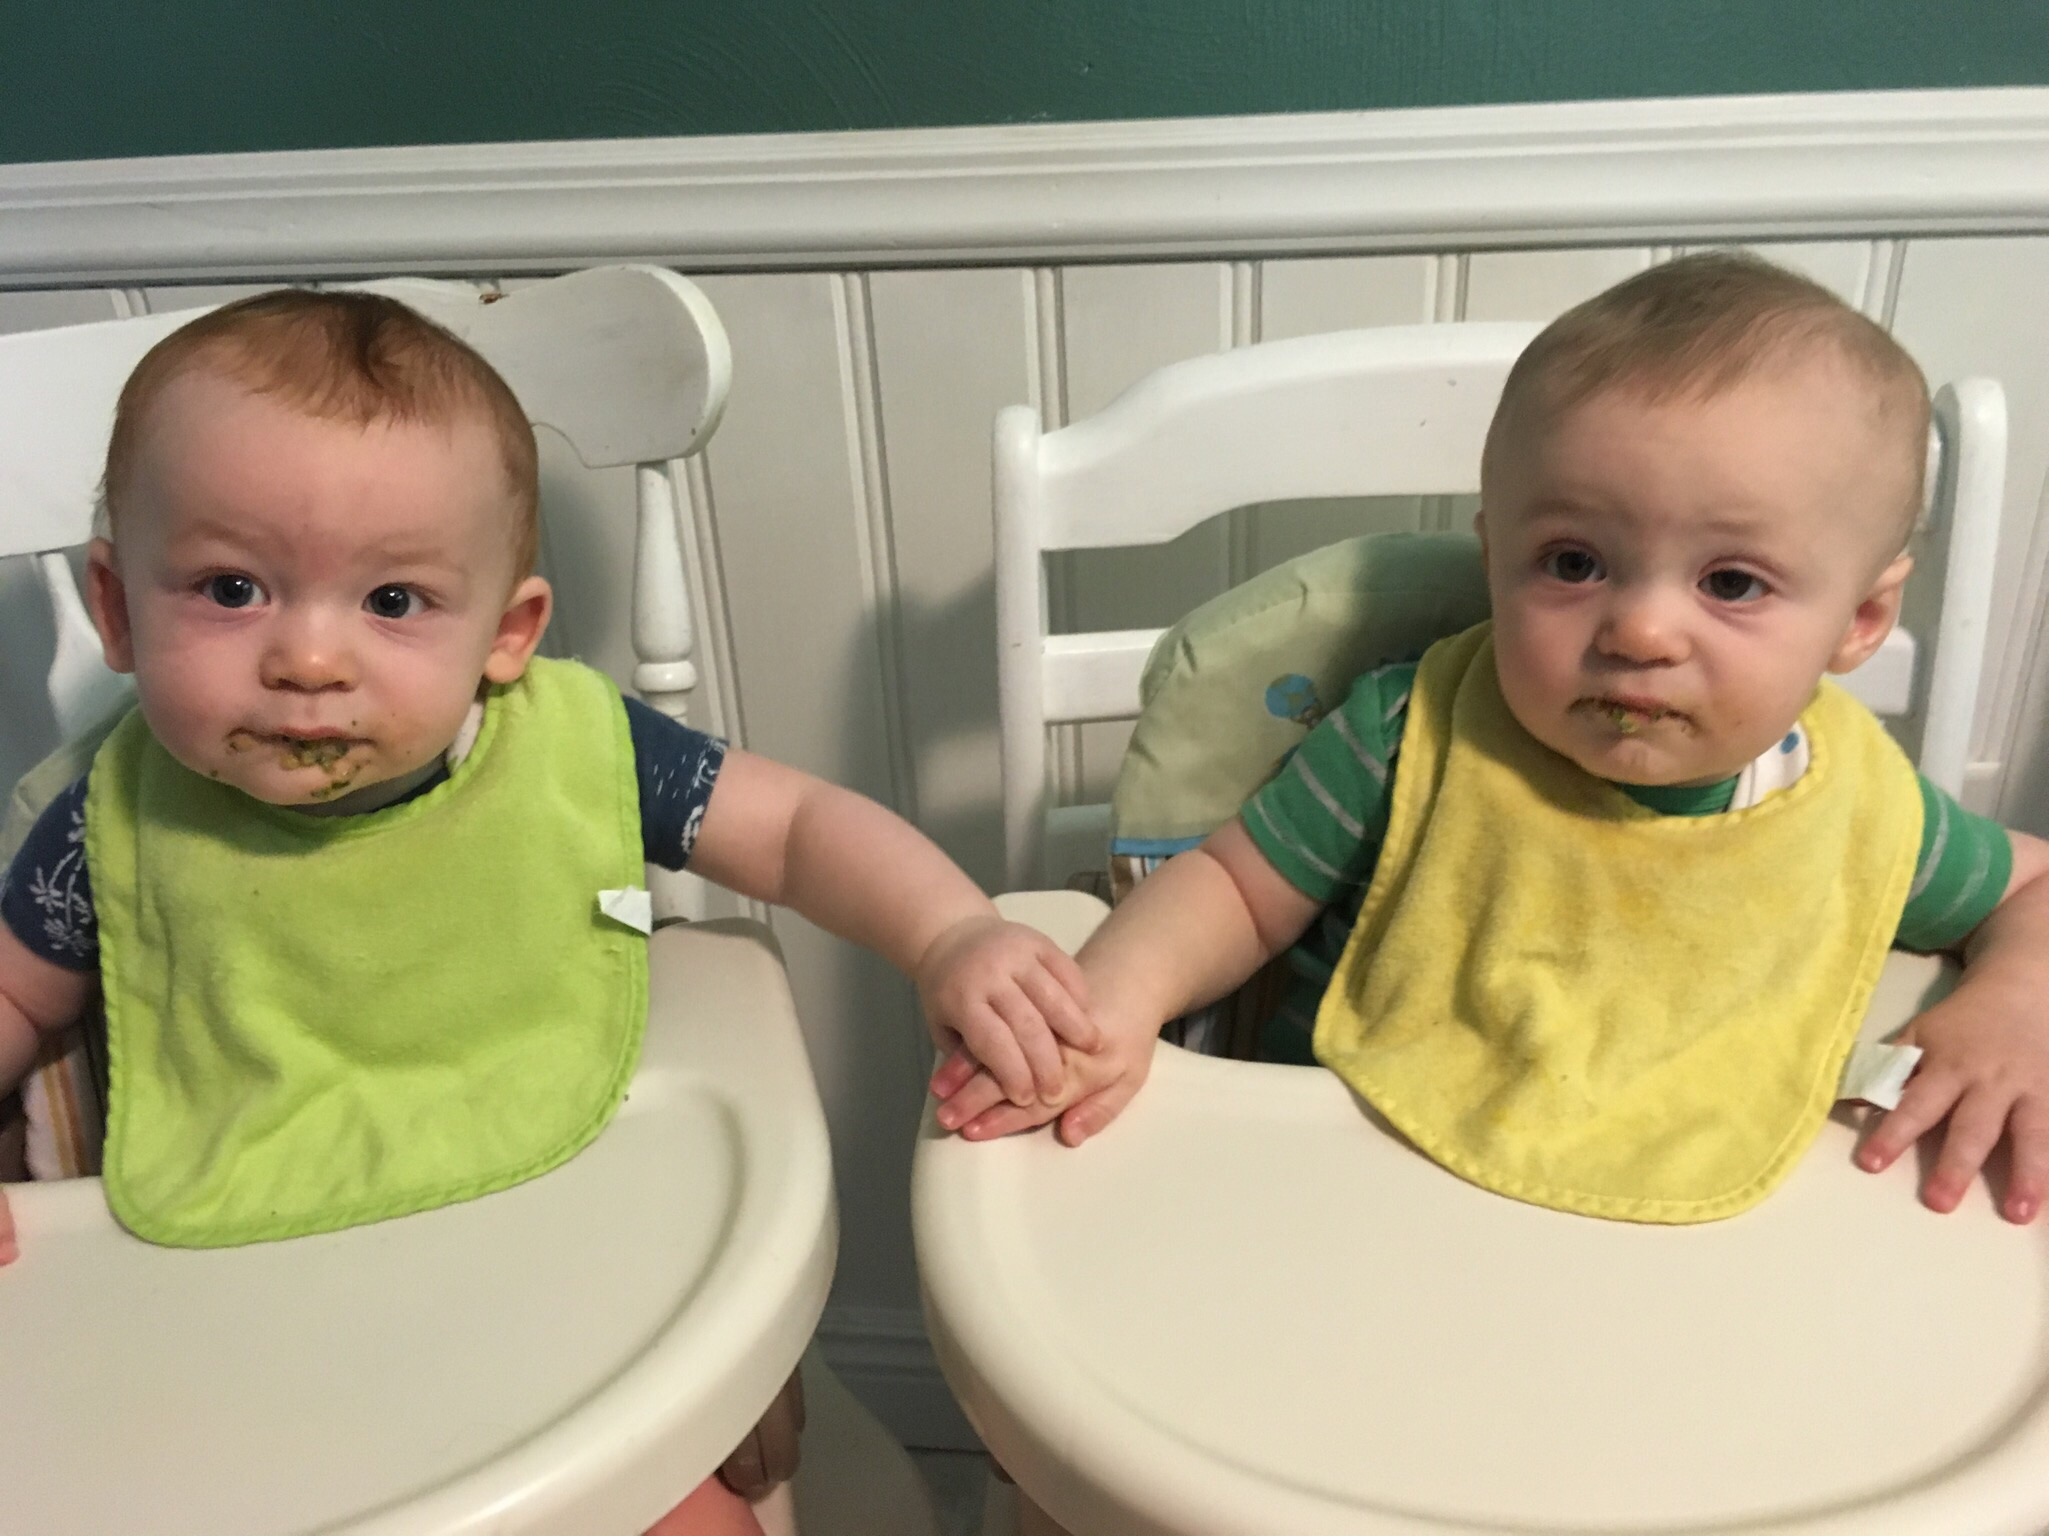 Joshua and Julian with food covered mouths, holding hands